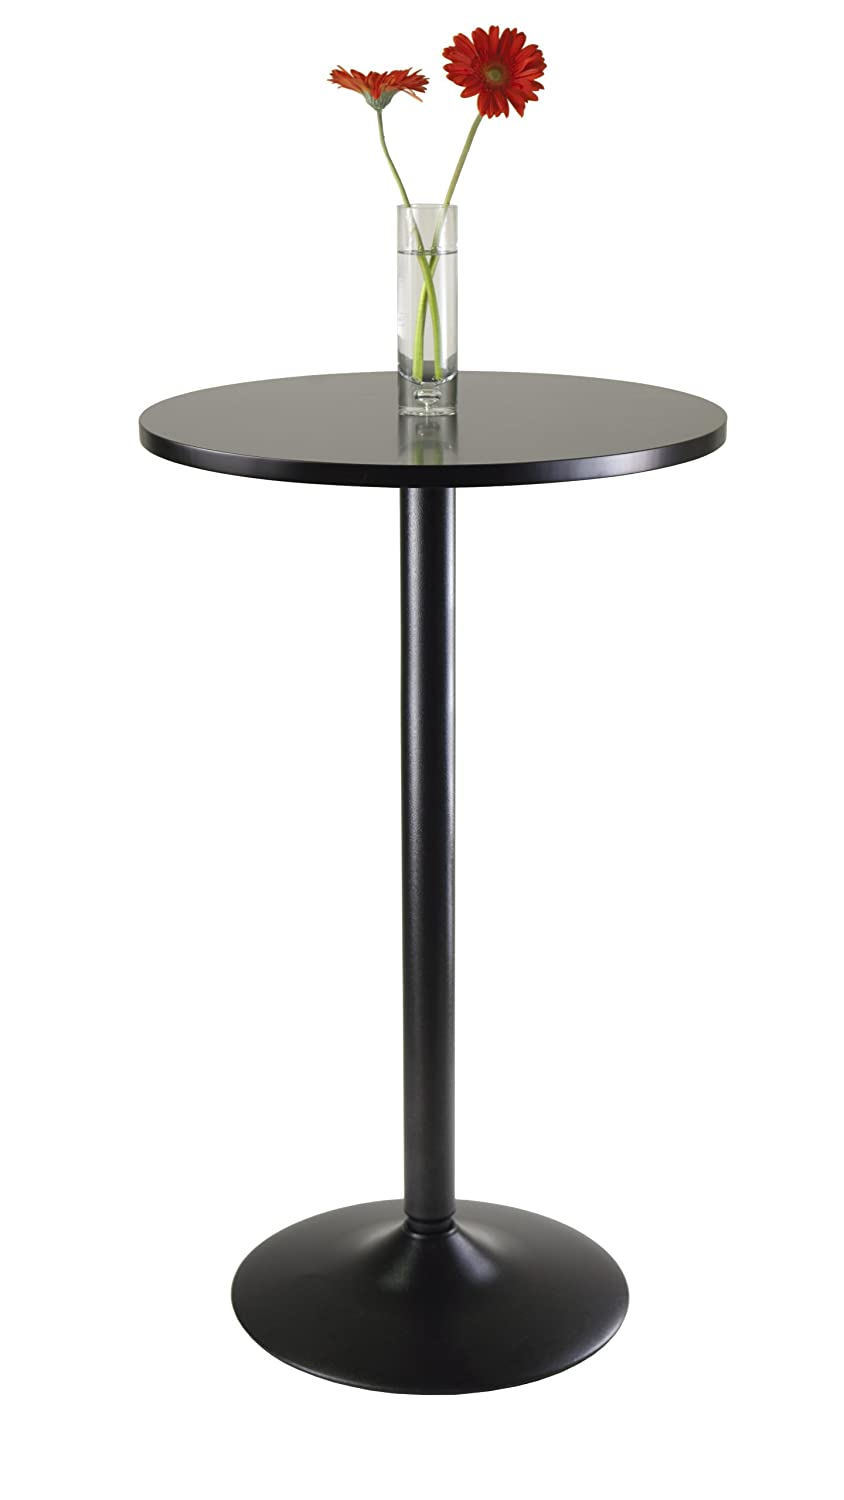 black round table. Amazon.com: Winsome Obsidian Pub Table Round Black Mdf Top With Leg And Base - 23.7-Inch Top, 39.76-Inch Height: Kitchen \u0026 Dining